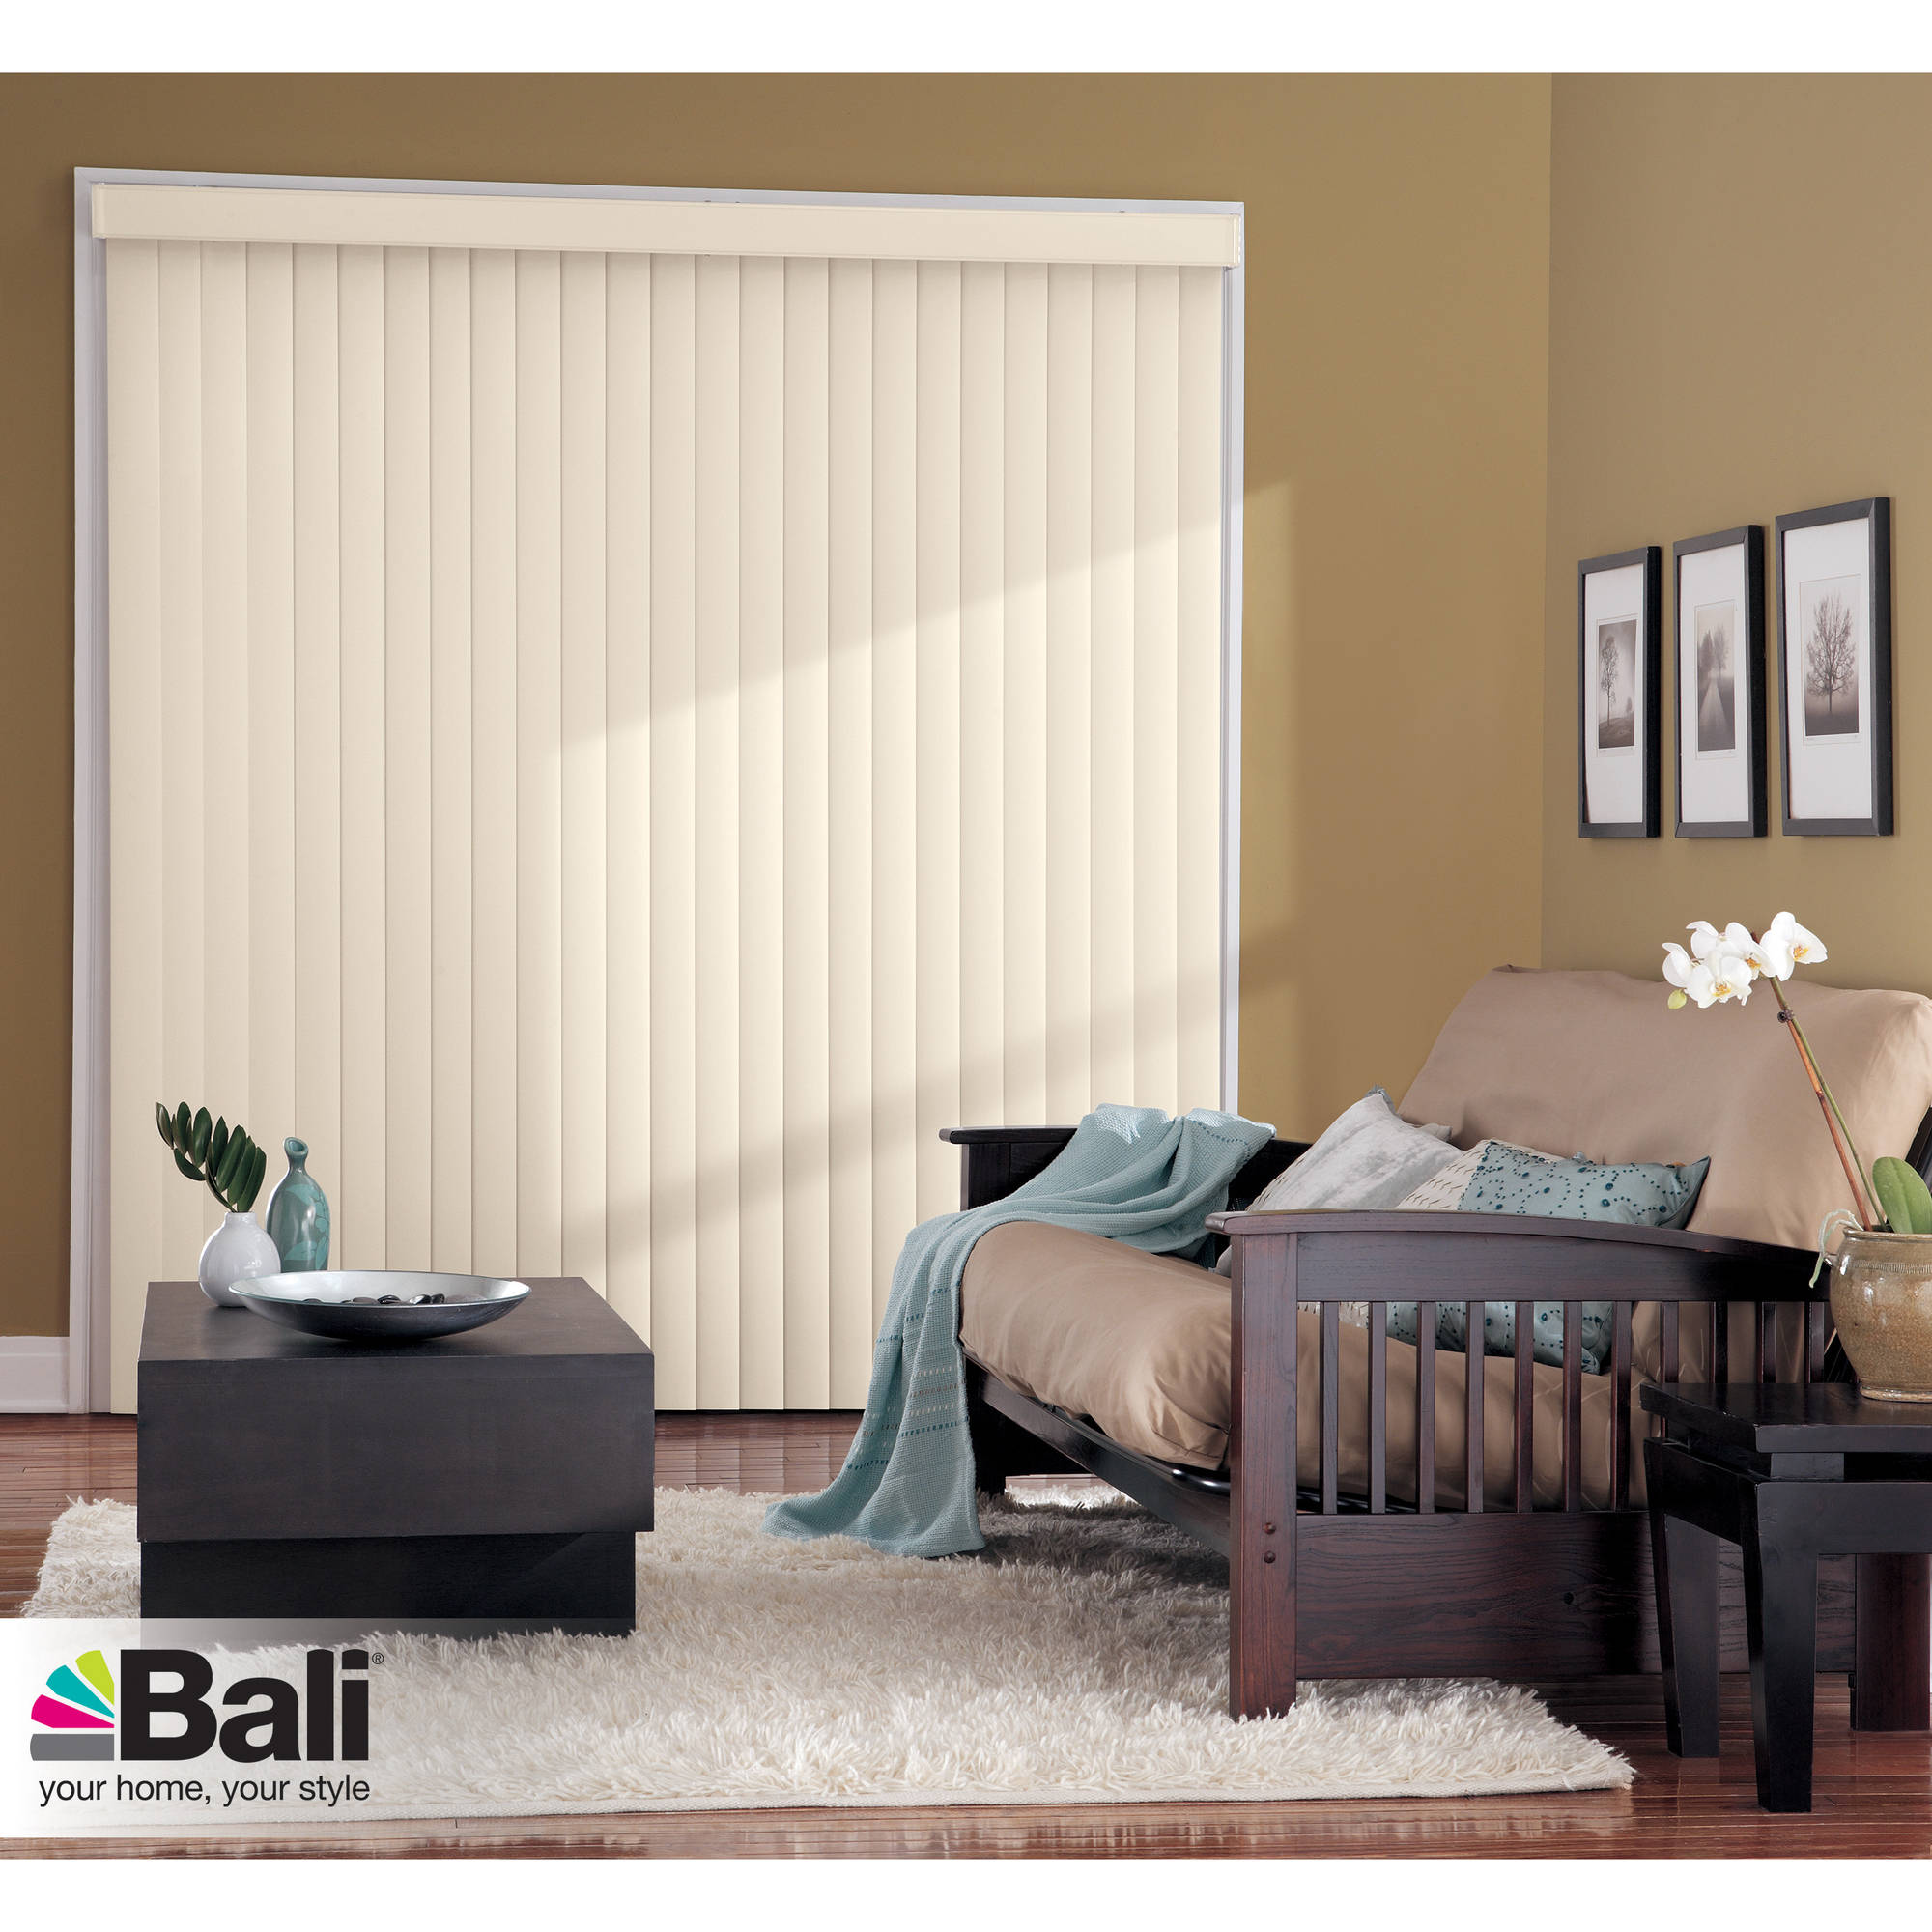 Bali Essentials Crown Vertical Blind, Available in Multiple Colors and Sizes